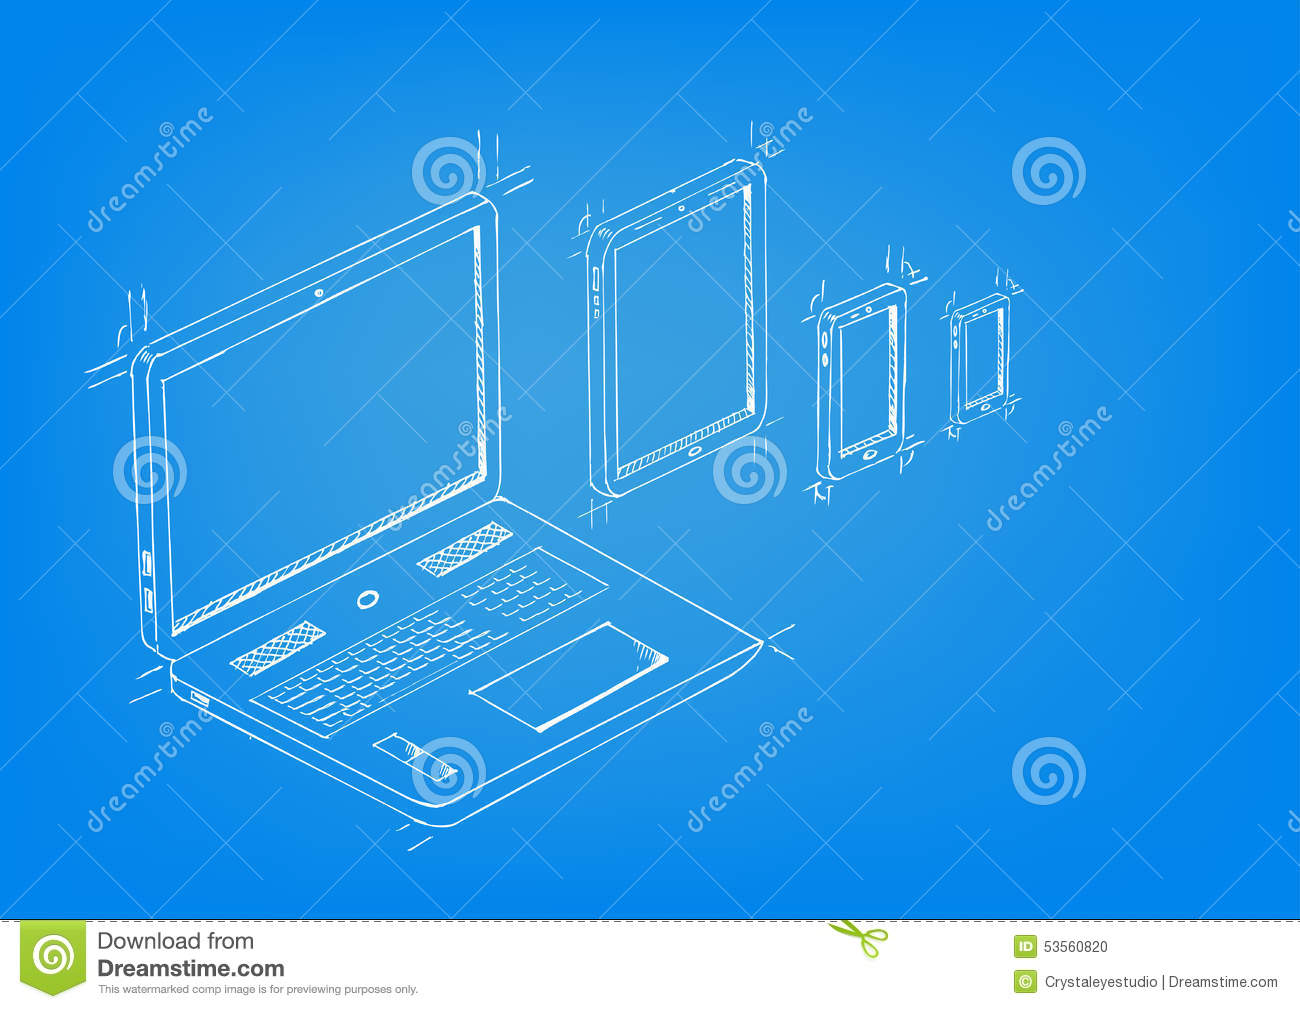 Mobile application concept sketch drawing vector stock vector blueprint drawing style concept artwork of laptop tablet mobile phones editable eps10 vector malvernweather